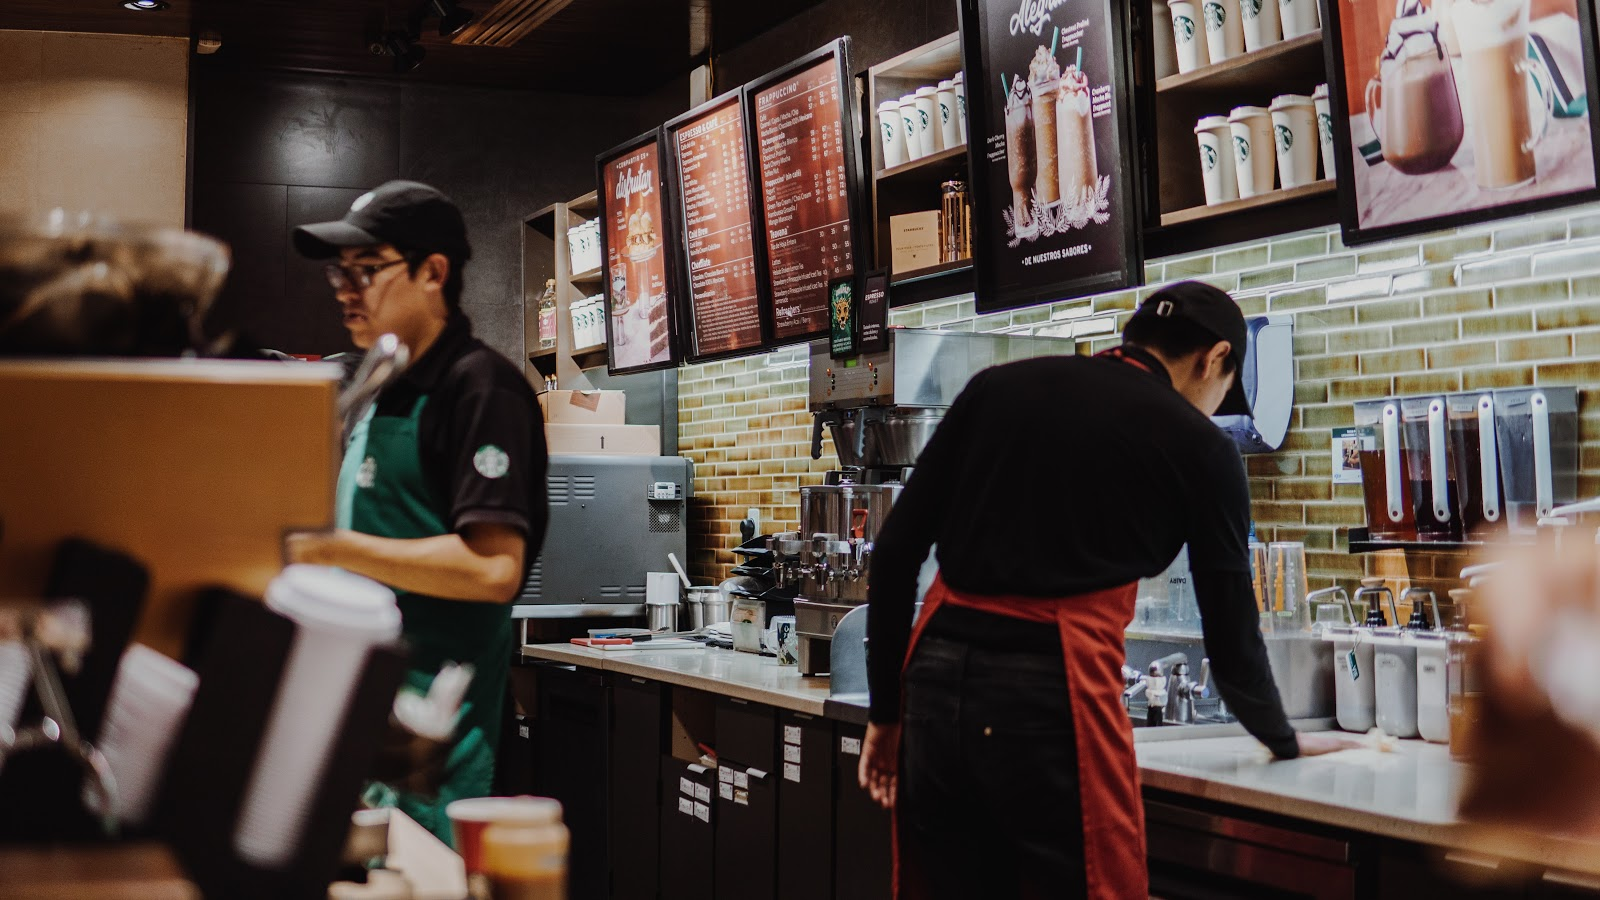 Starbucks as an example of company that runs green marketing campaign.